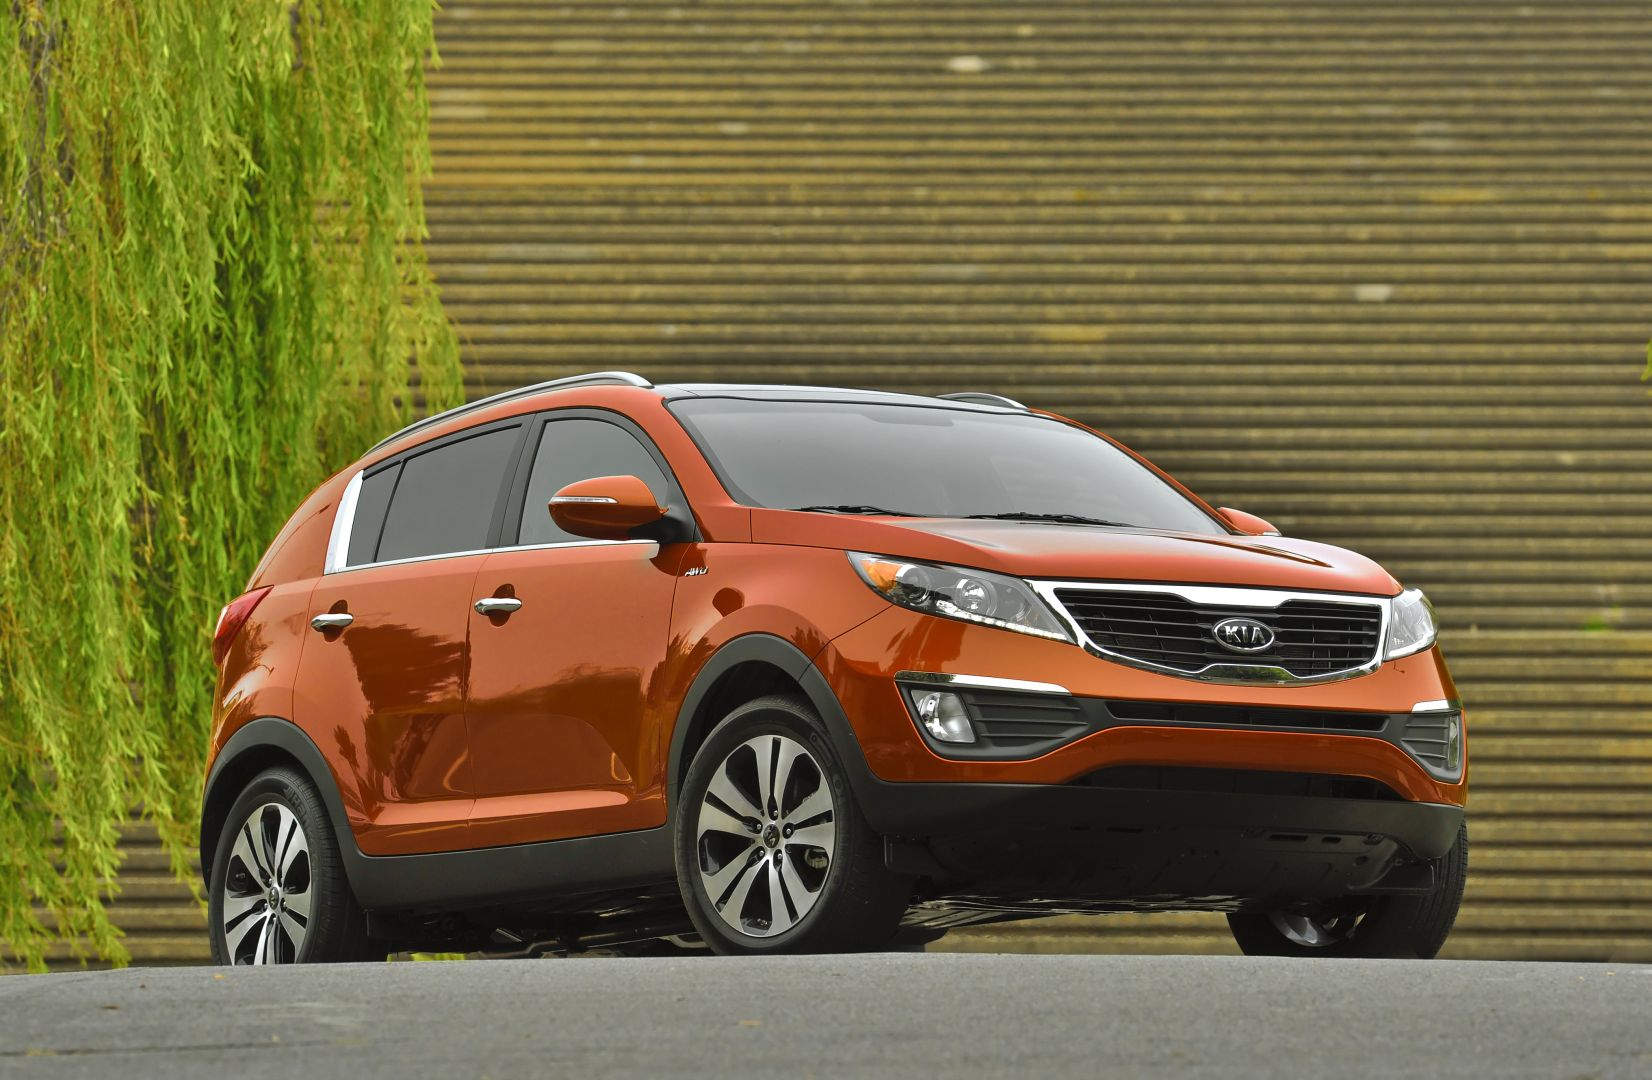 kia sportage specs 2010 2011 2012 2013 autoevolution. Black Bedroom Furniture Sets. Home Design Ideas